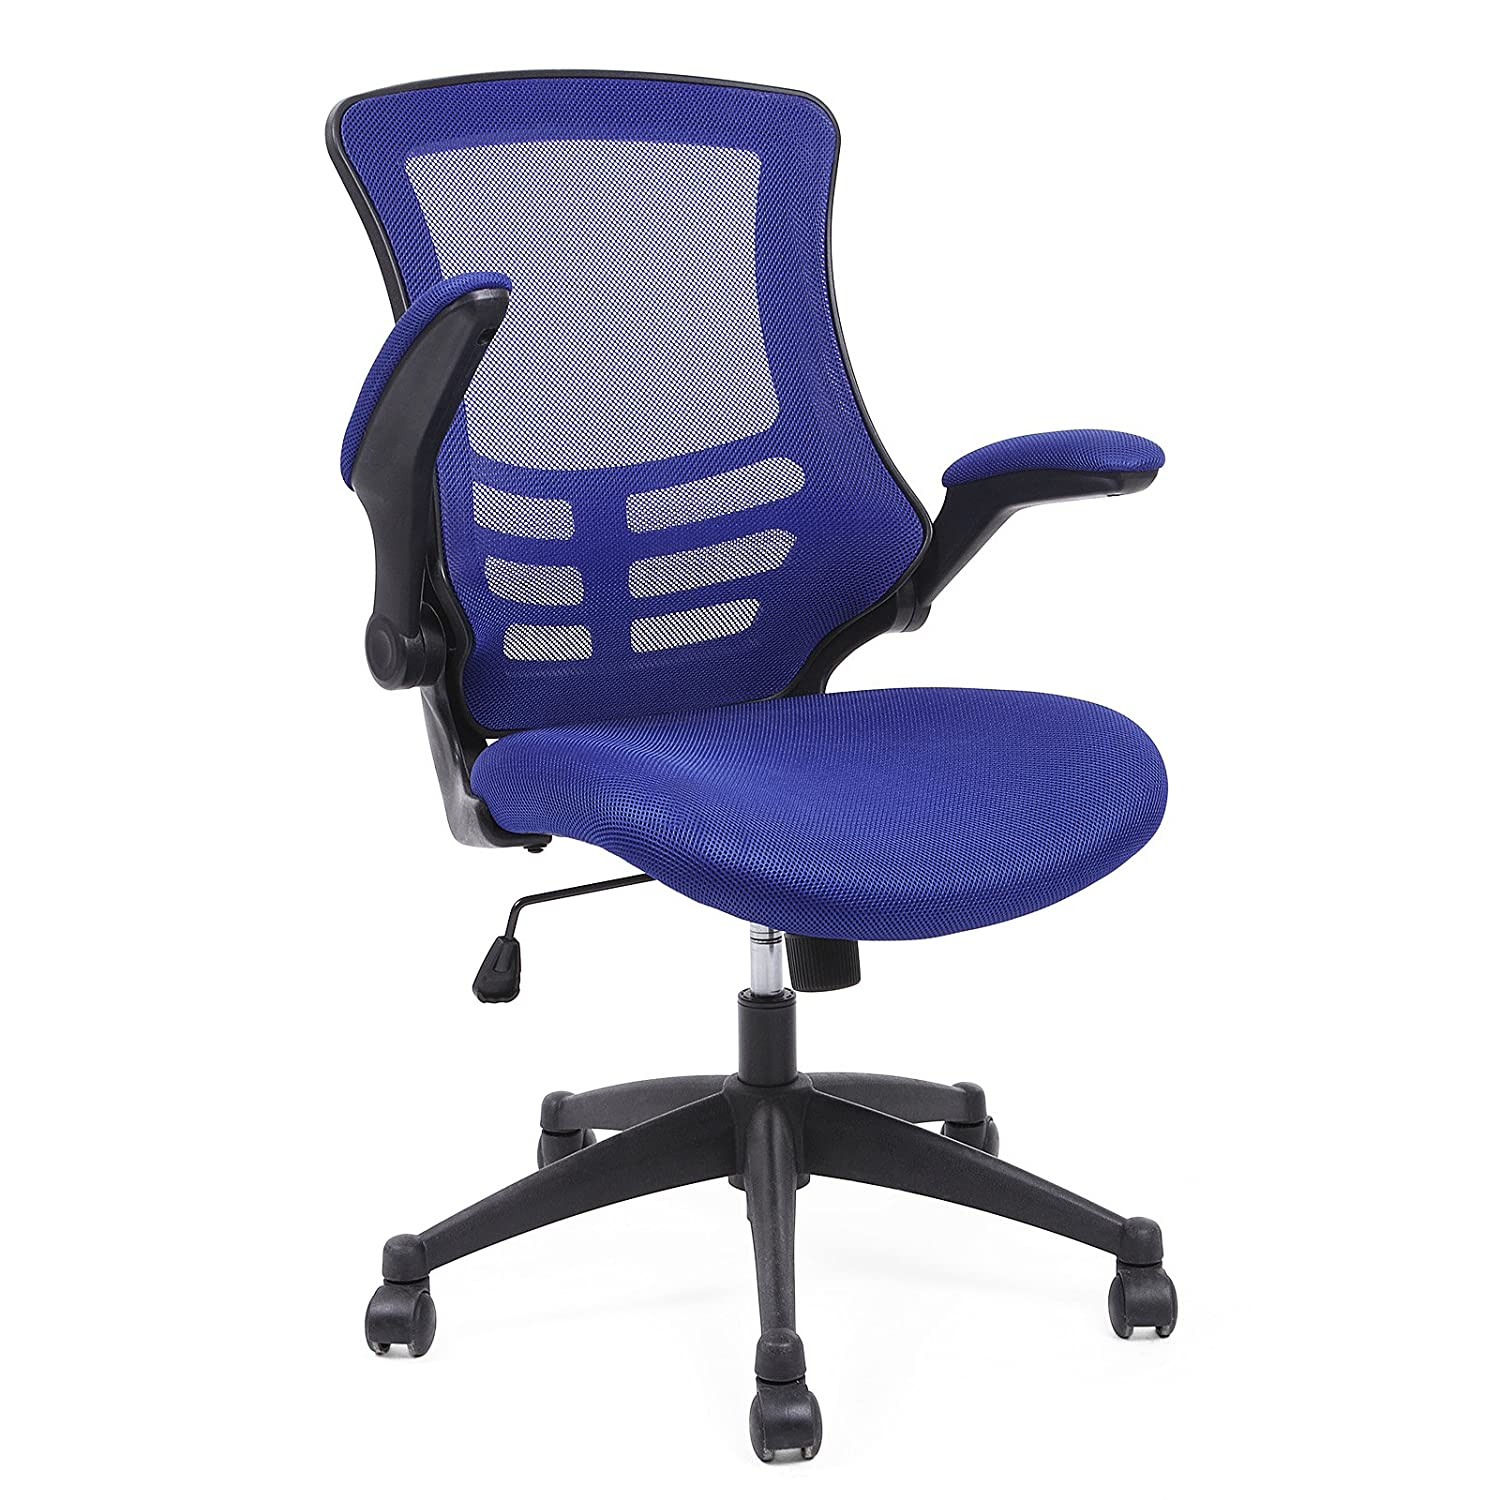 Steelcase Think 3D Mesh Fabric Chair